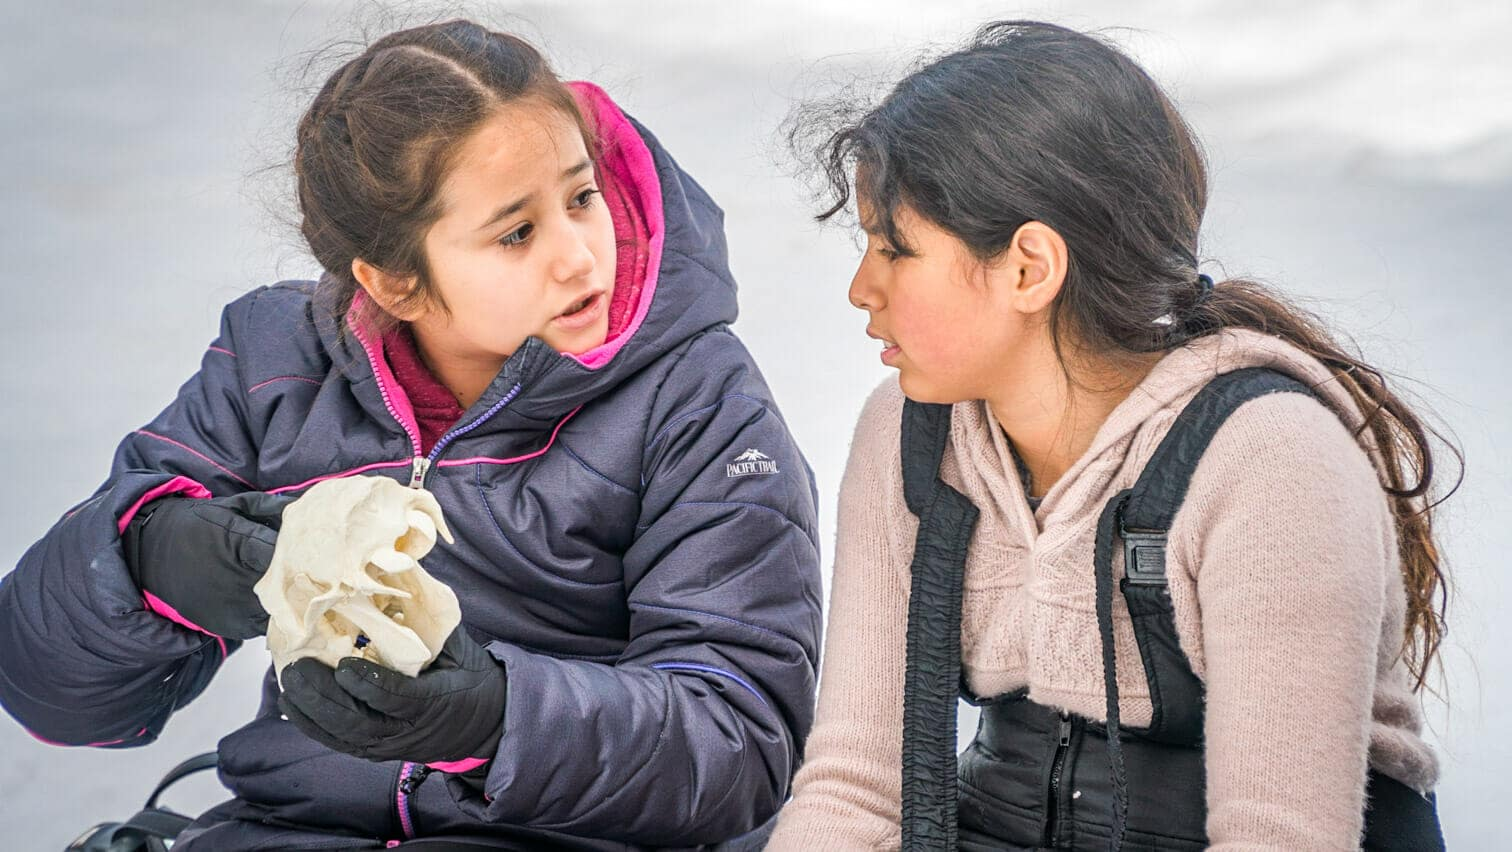 Two Pali students in snowgear sit outside and look at animal skull